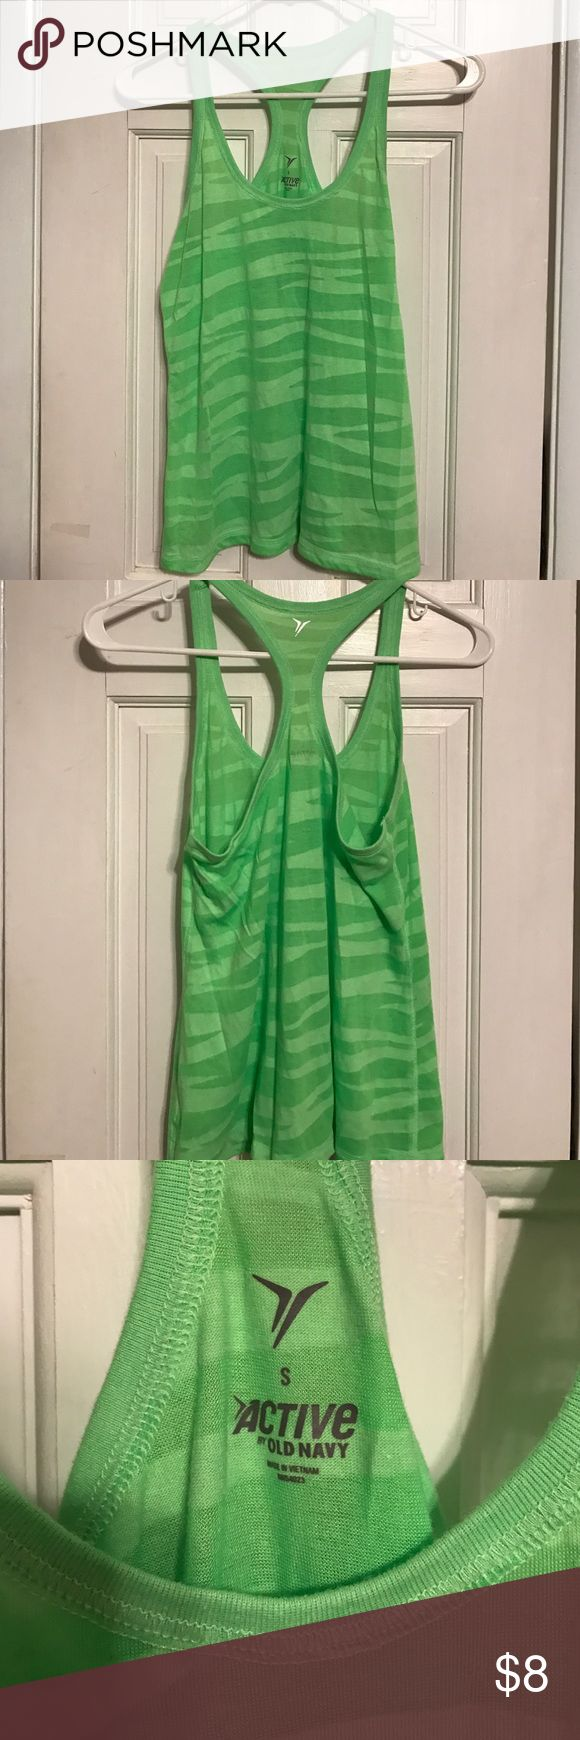 Green old navy active tank top Green shear zebra striped tank top. Part of old navy's active collection. Razorback Old Navy Tops Tank Tops